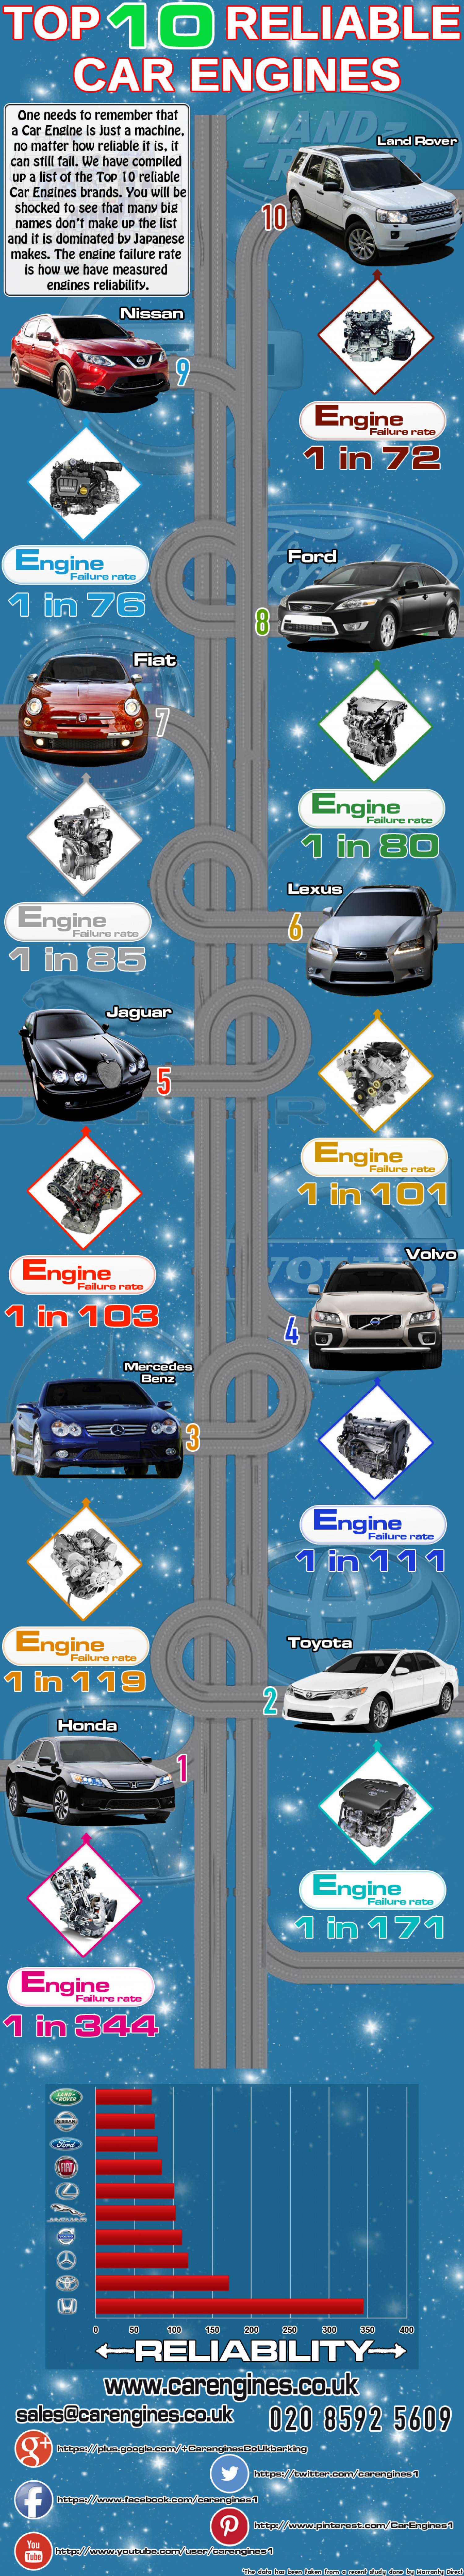 10 Most Reliable Car Engines Infographic